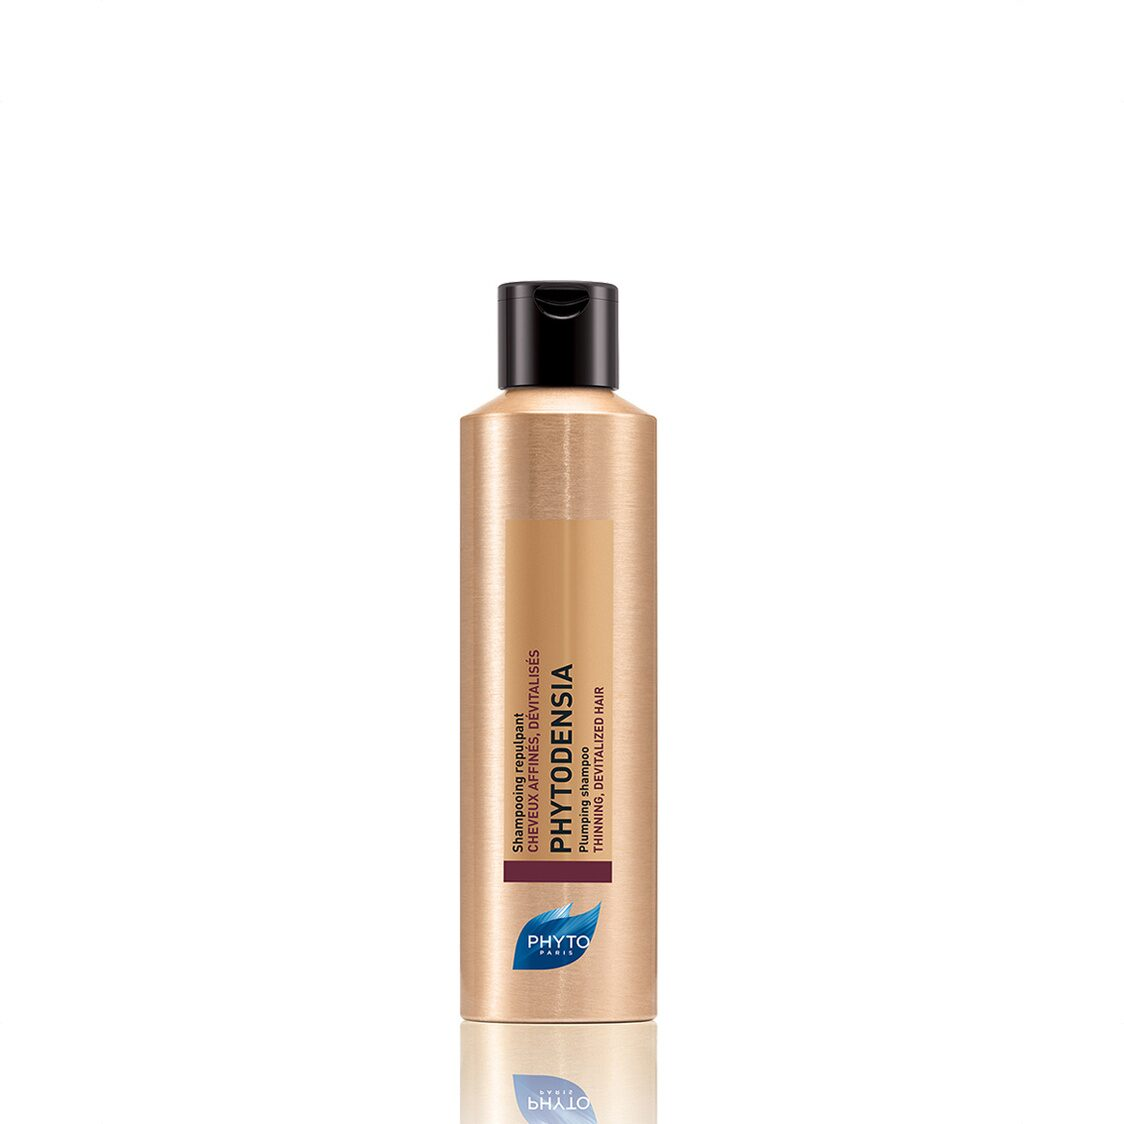 Phytodensia Anti-Aging Shampoo 200ml P362